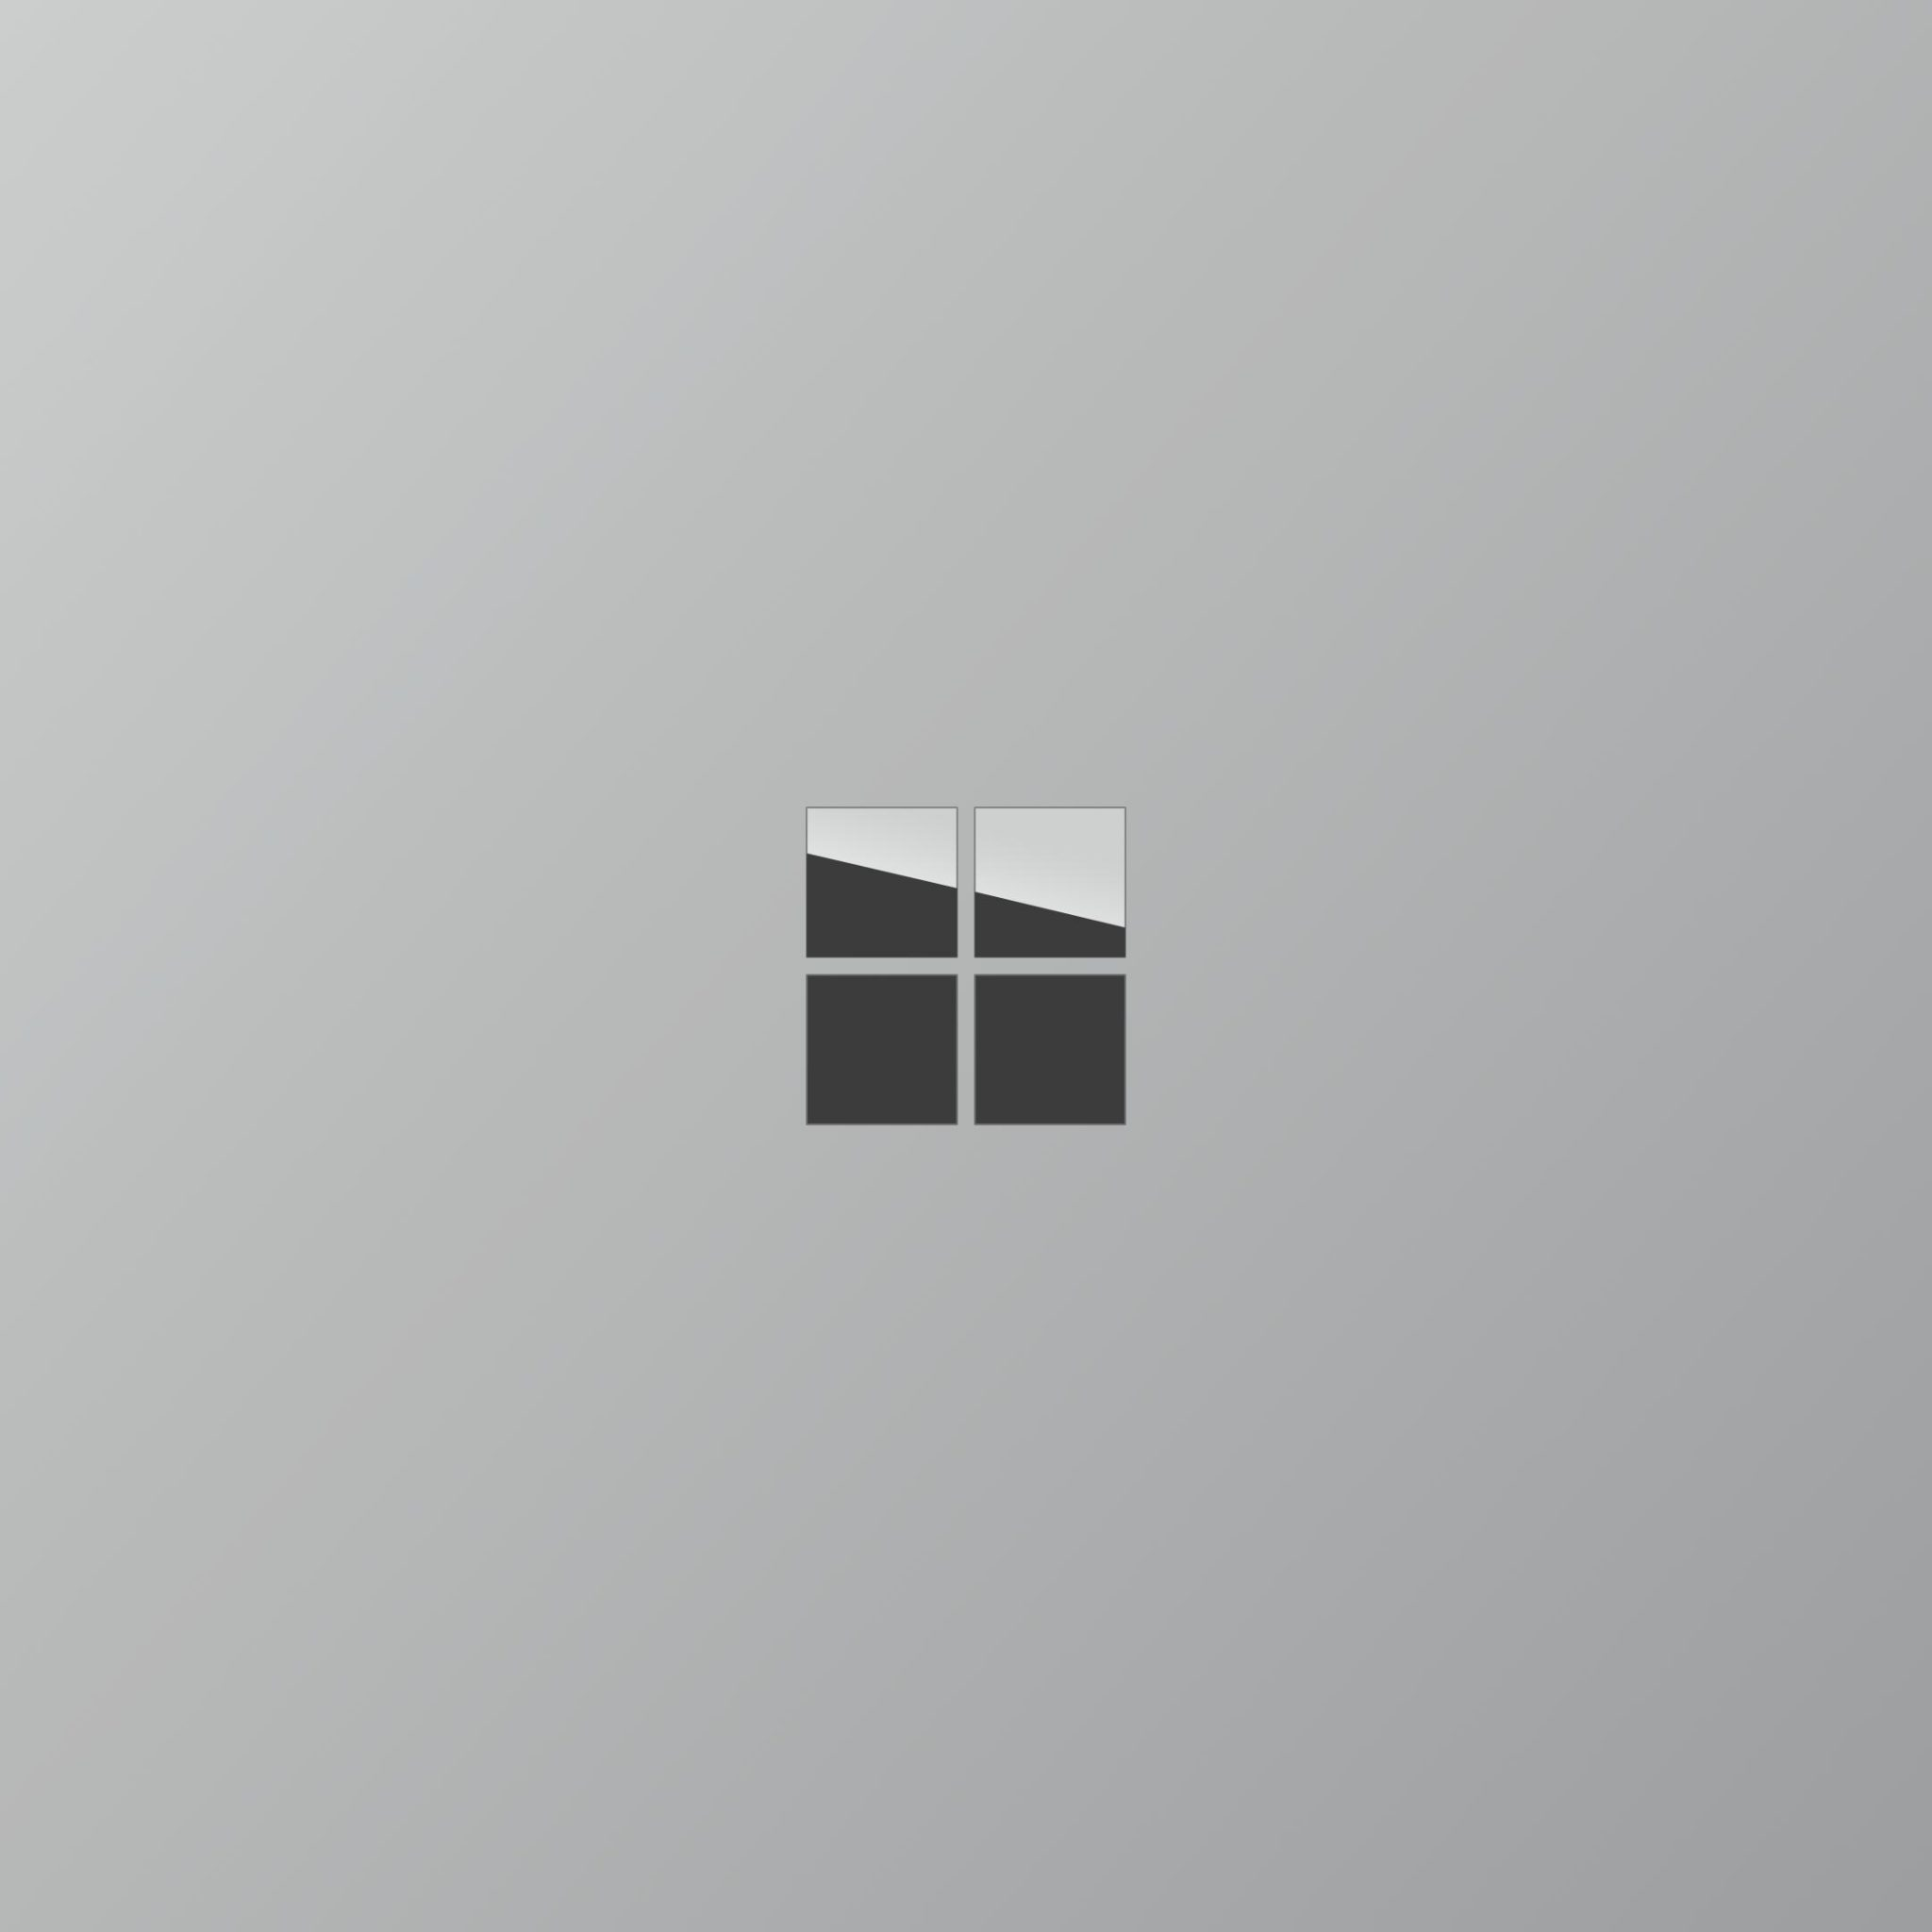 Microsoft Logo Wallpapers.